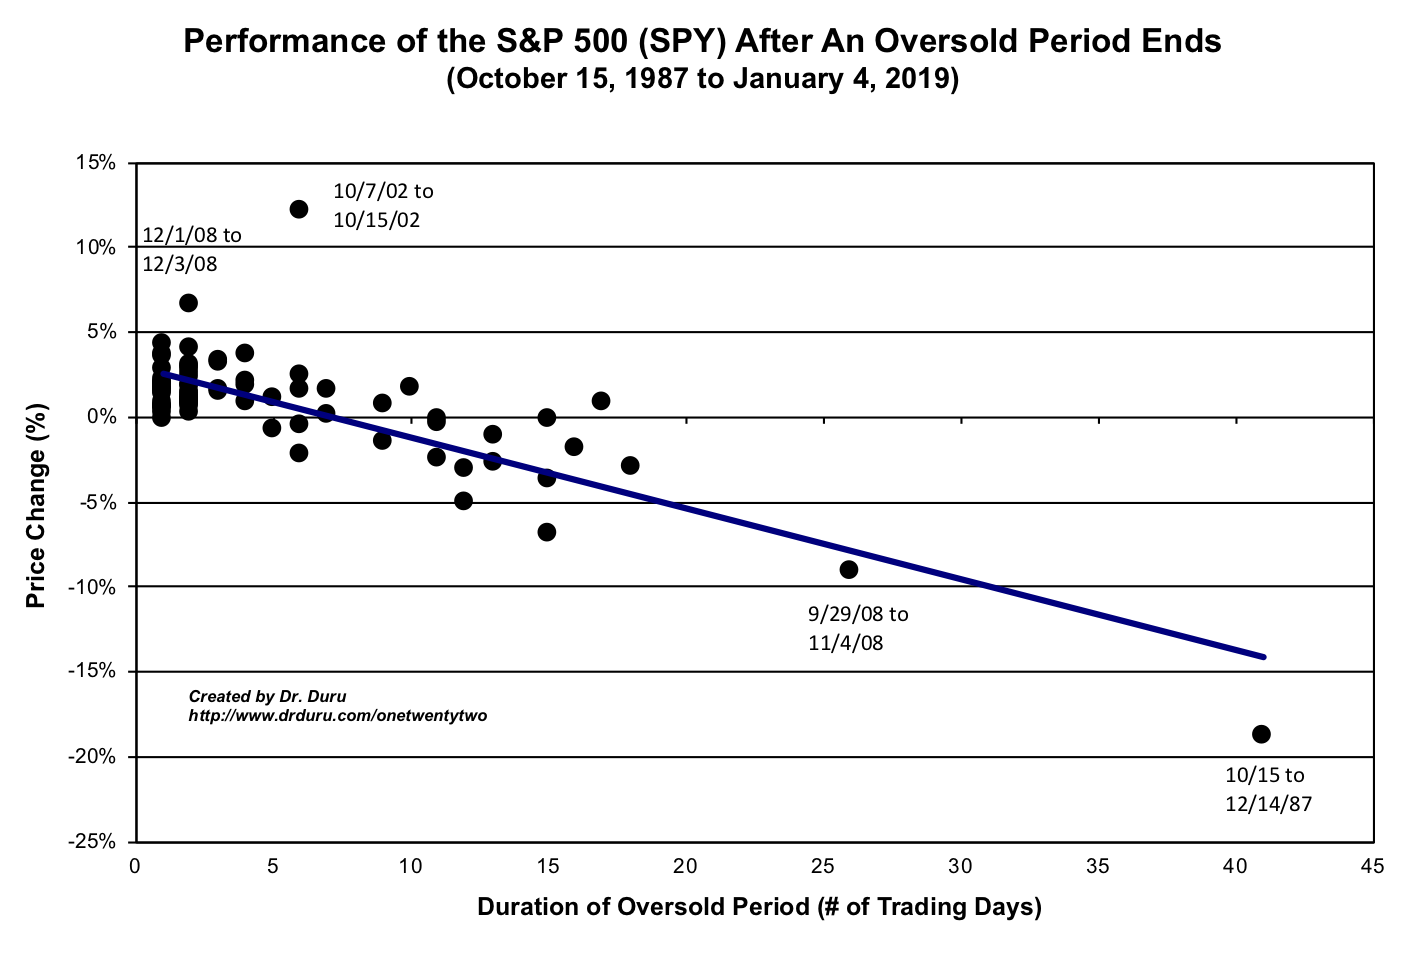 Performance of the S&P 500 (SPY) from the beginning to the end of an oversold period.